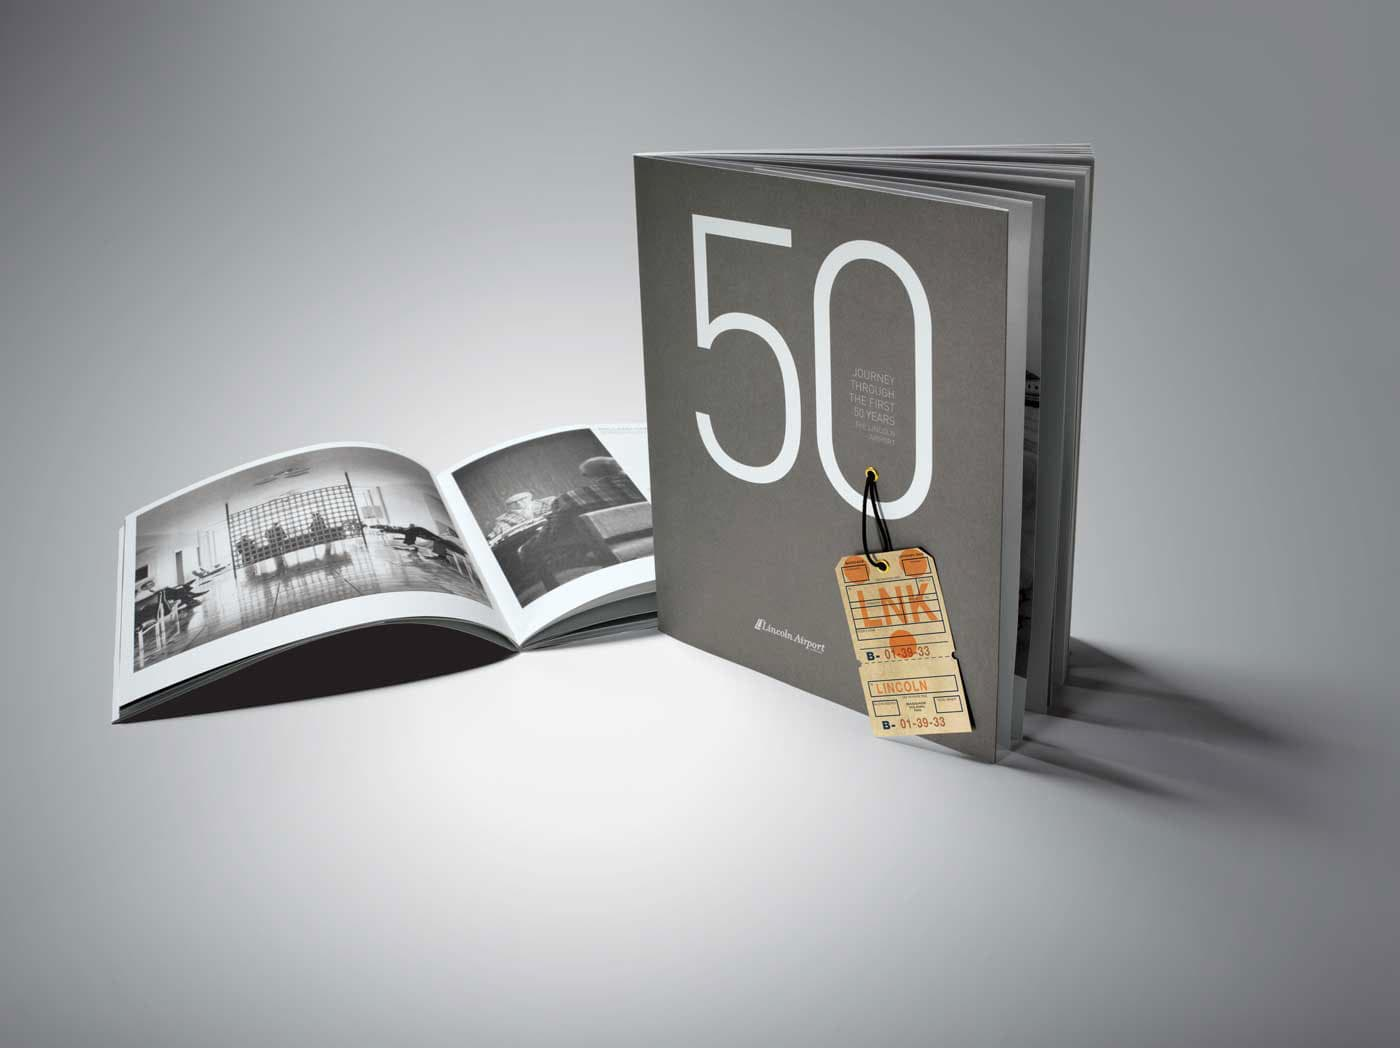 JOURNEY THROUGH THE FIRST 50 YEARS